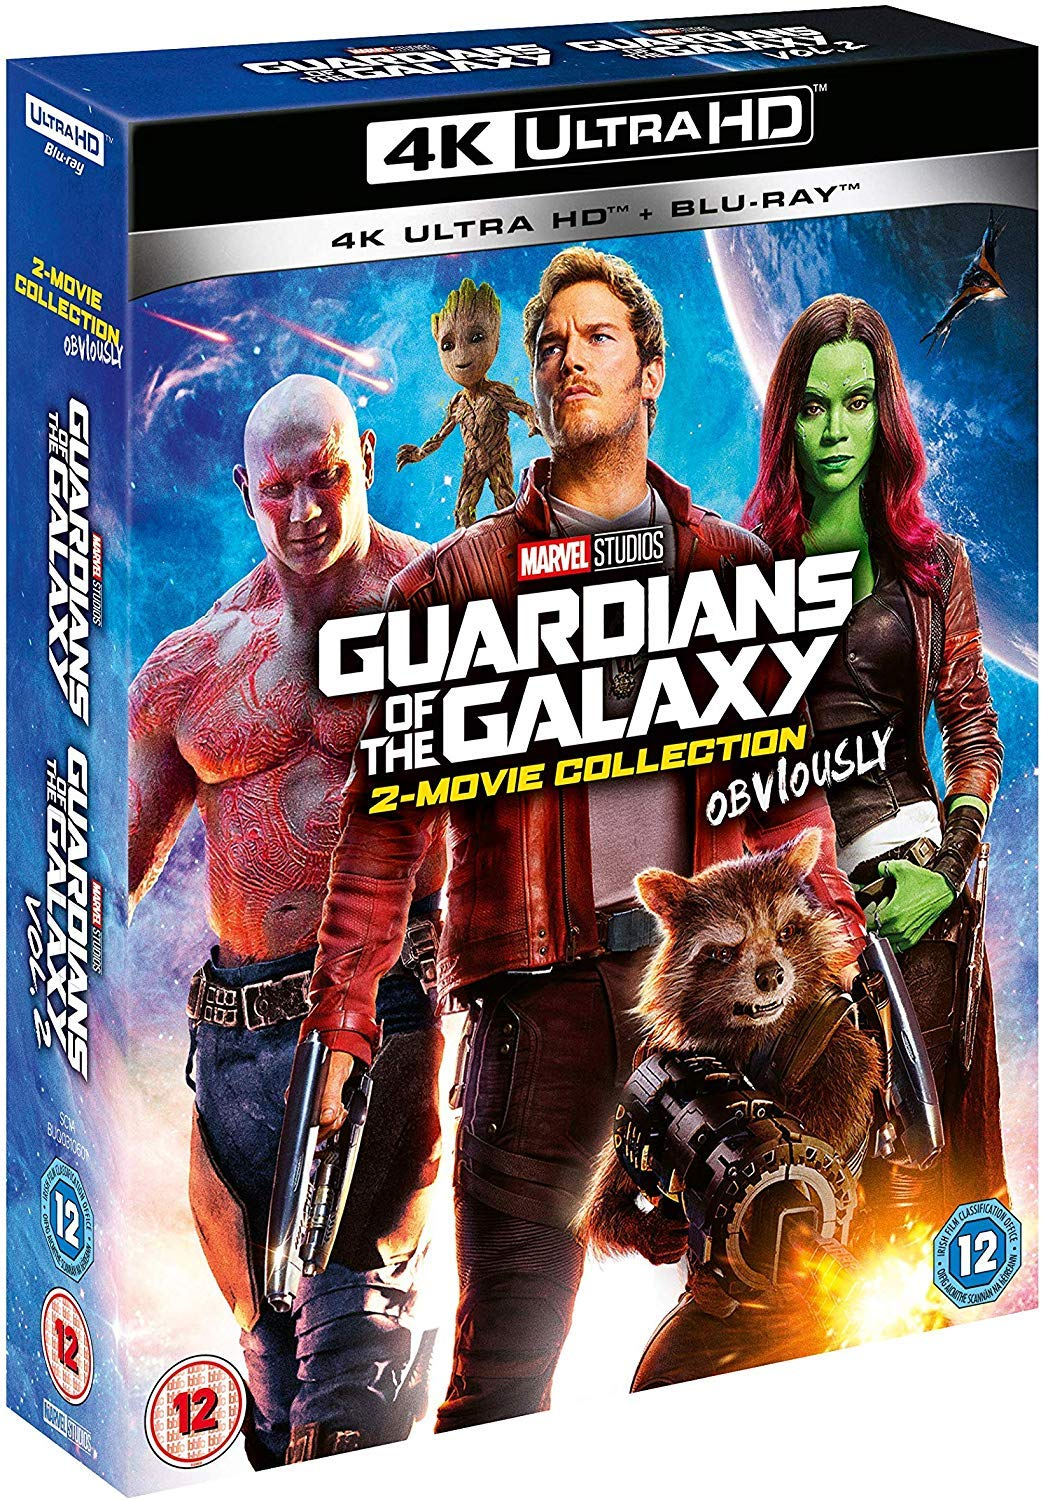 Guardians of the Galaxy 1-2 Collection [4K UHD + Blu-ray]